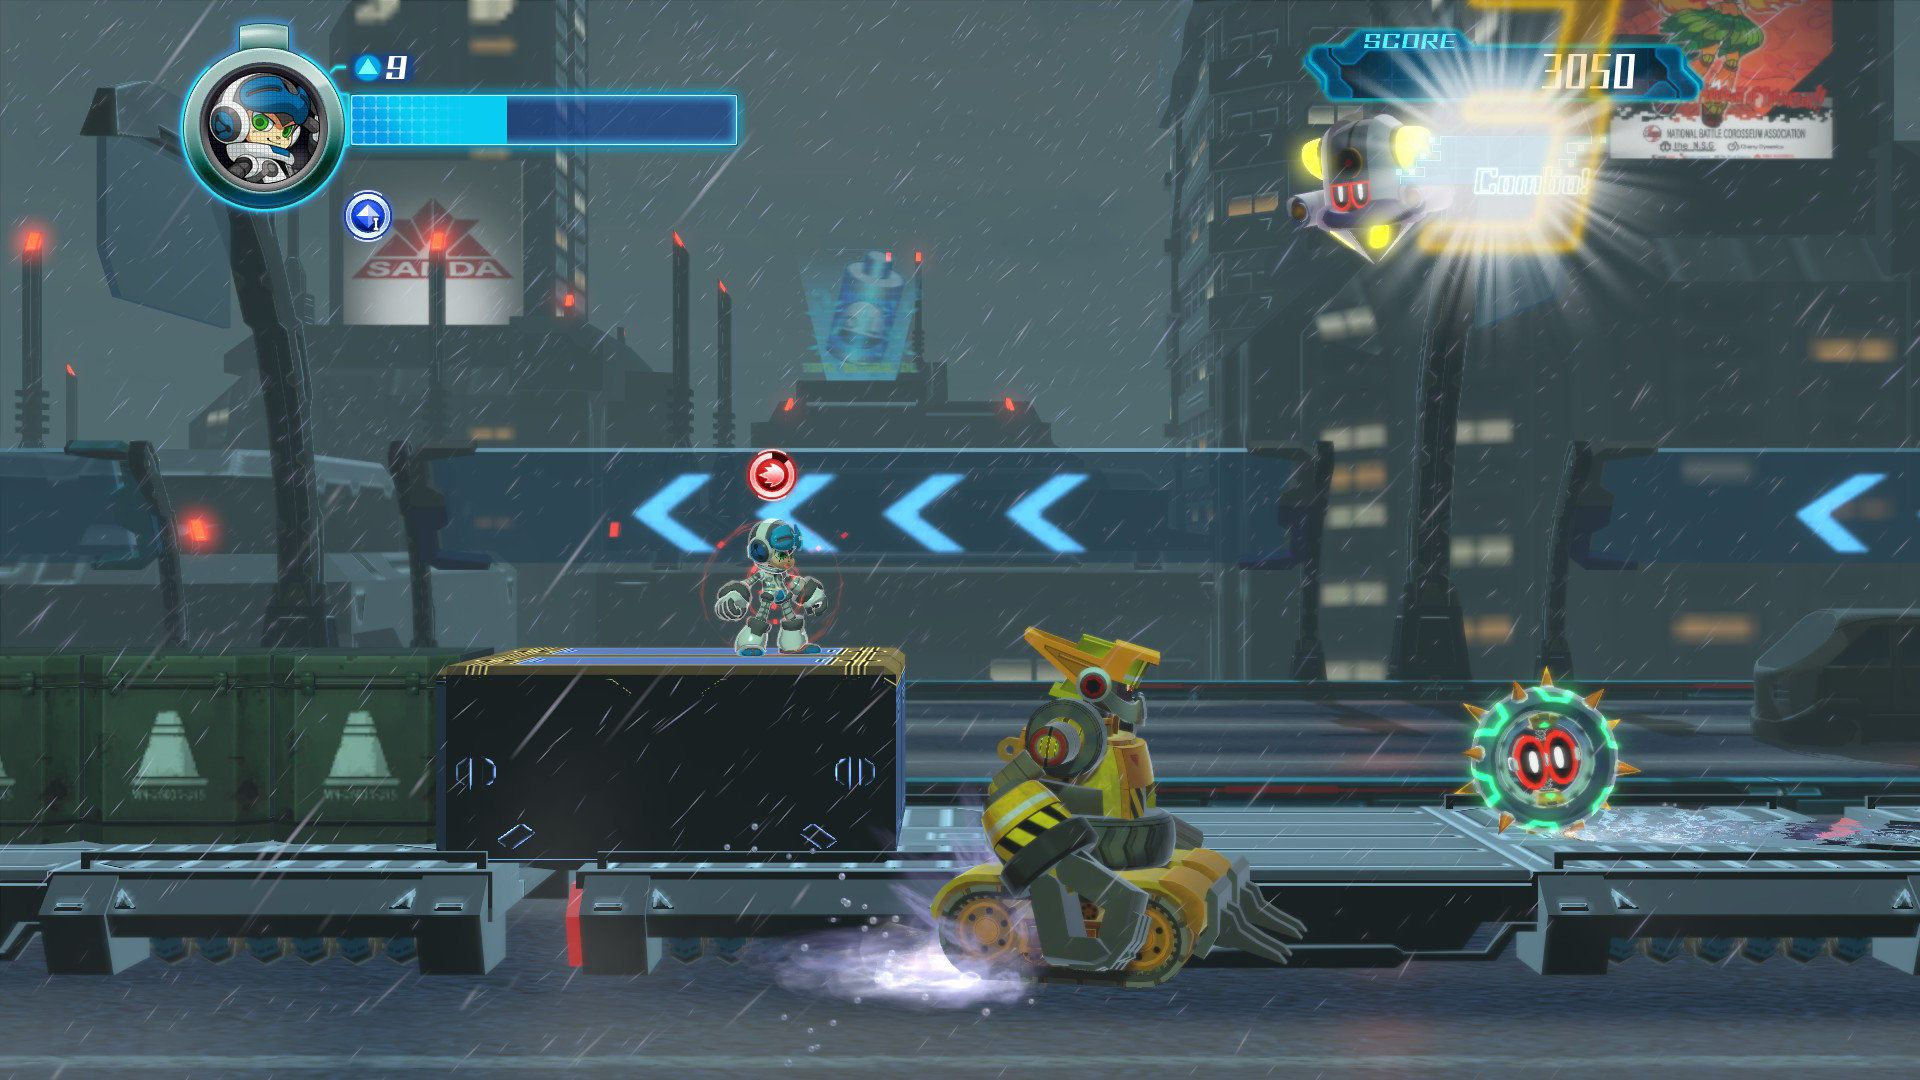 mighty-no-9-screenshot-05-ps4-ps3-psv-us-10apr15